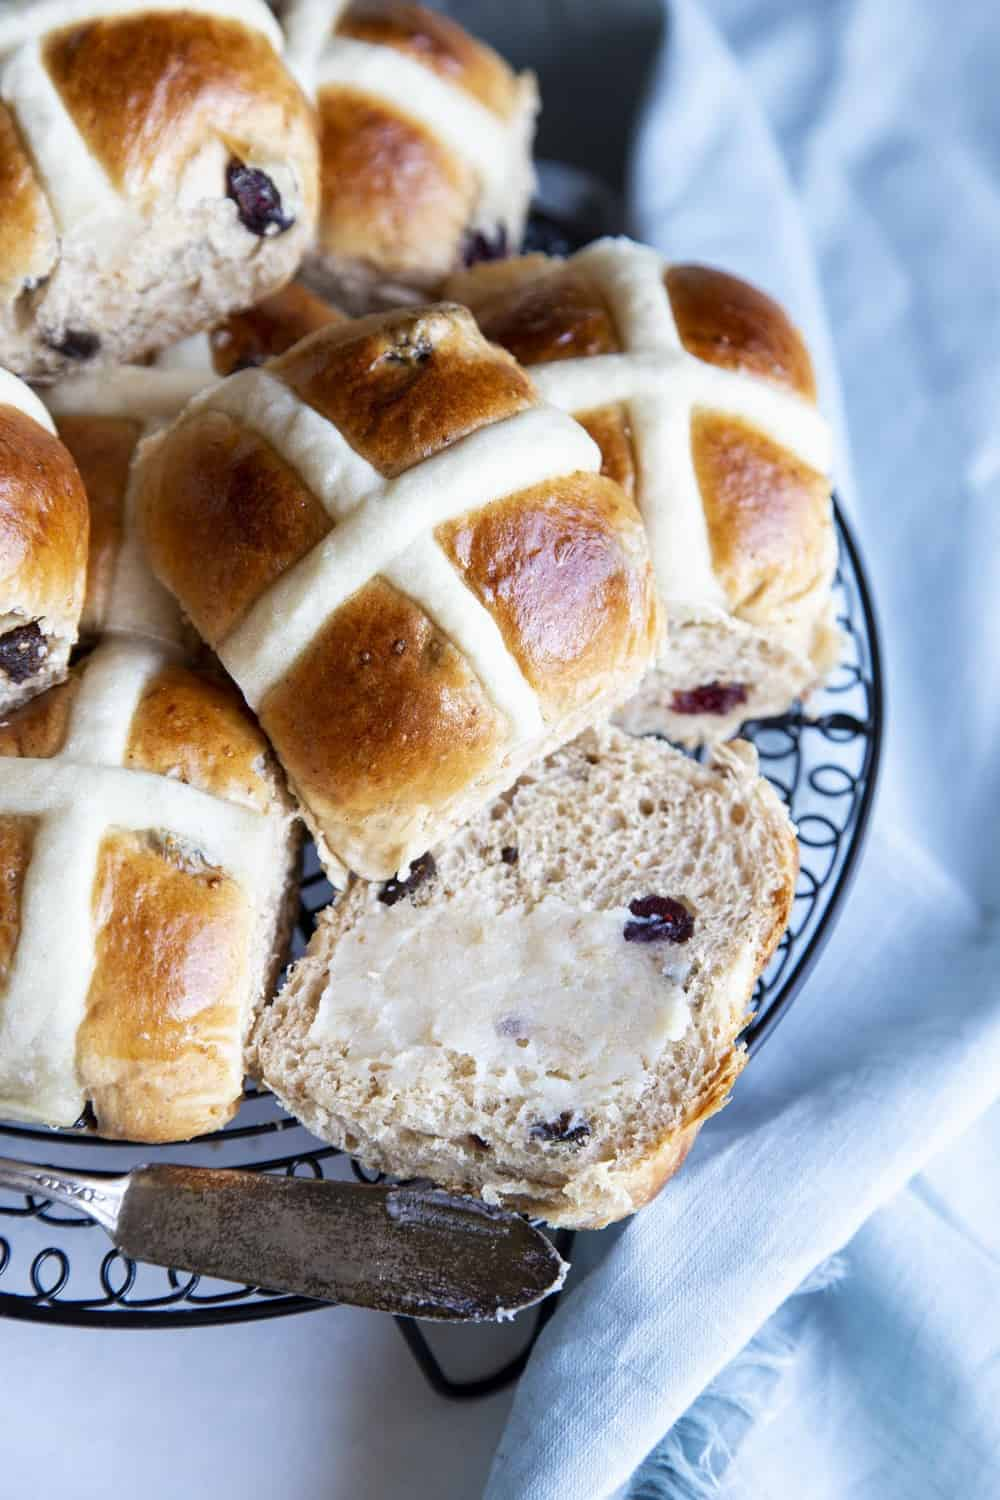 A plate of hot cross buns and one cut open with butter.